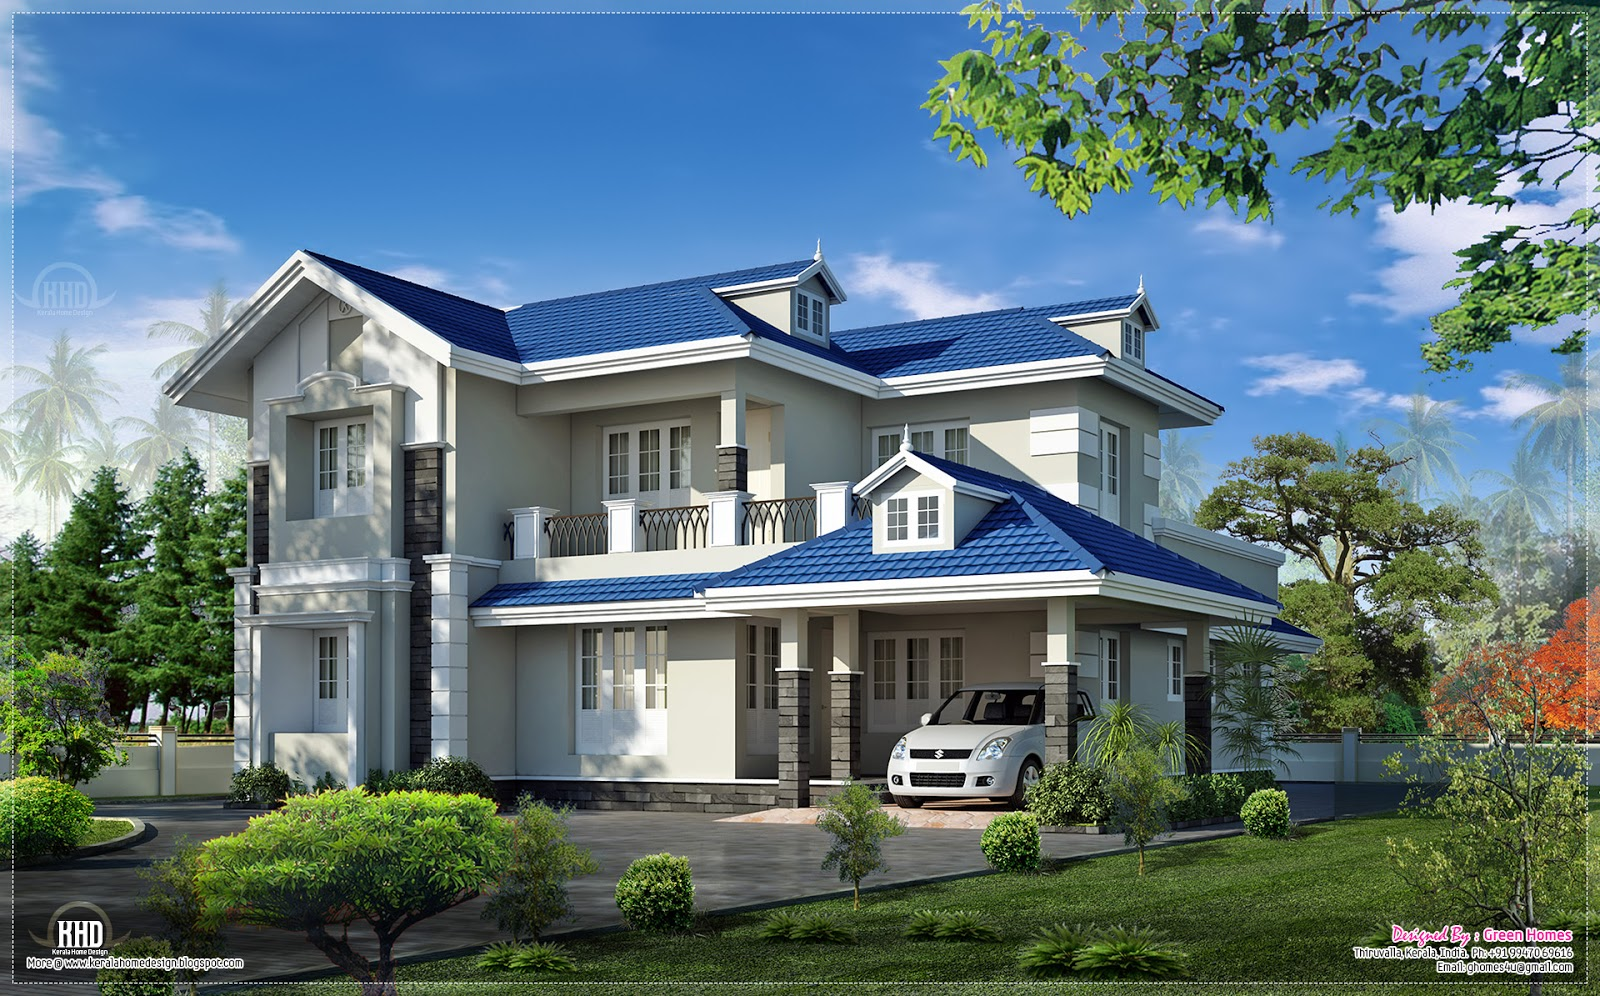 Beautiful 4 bedroom villa exterior home ideas house for Four bedroom townhomes